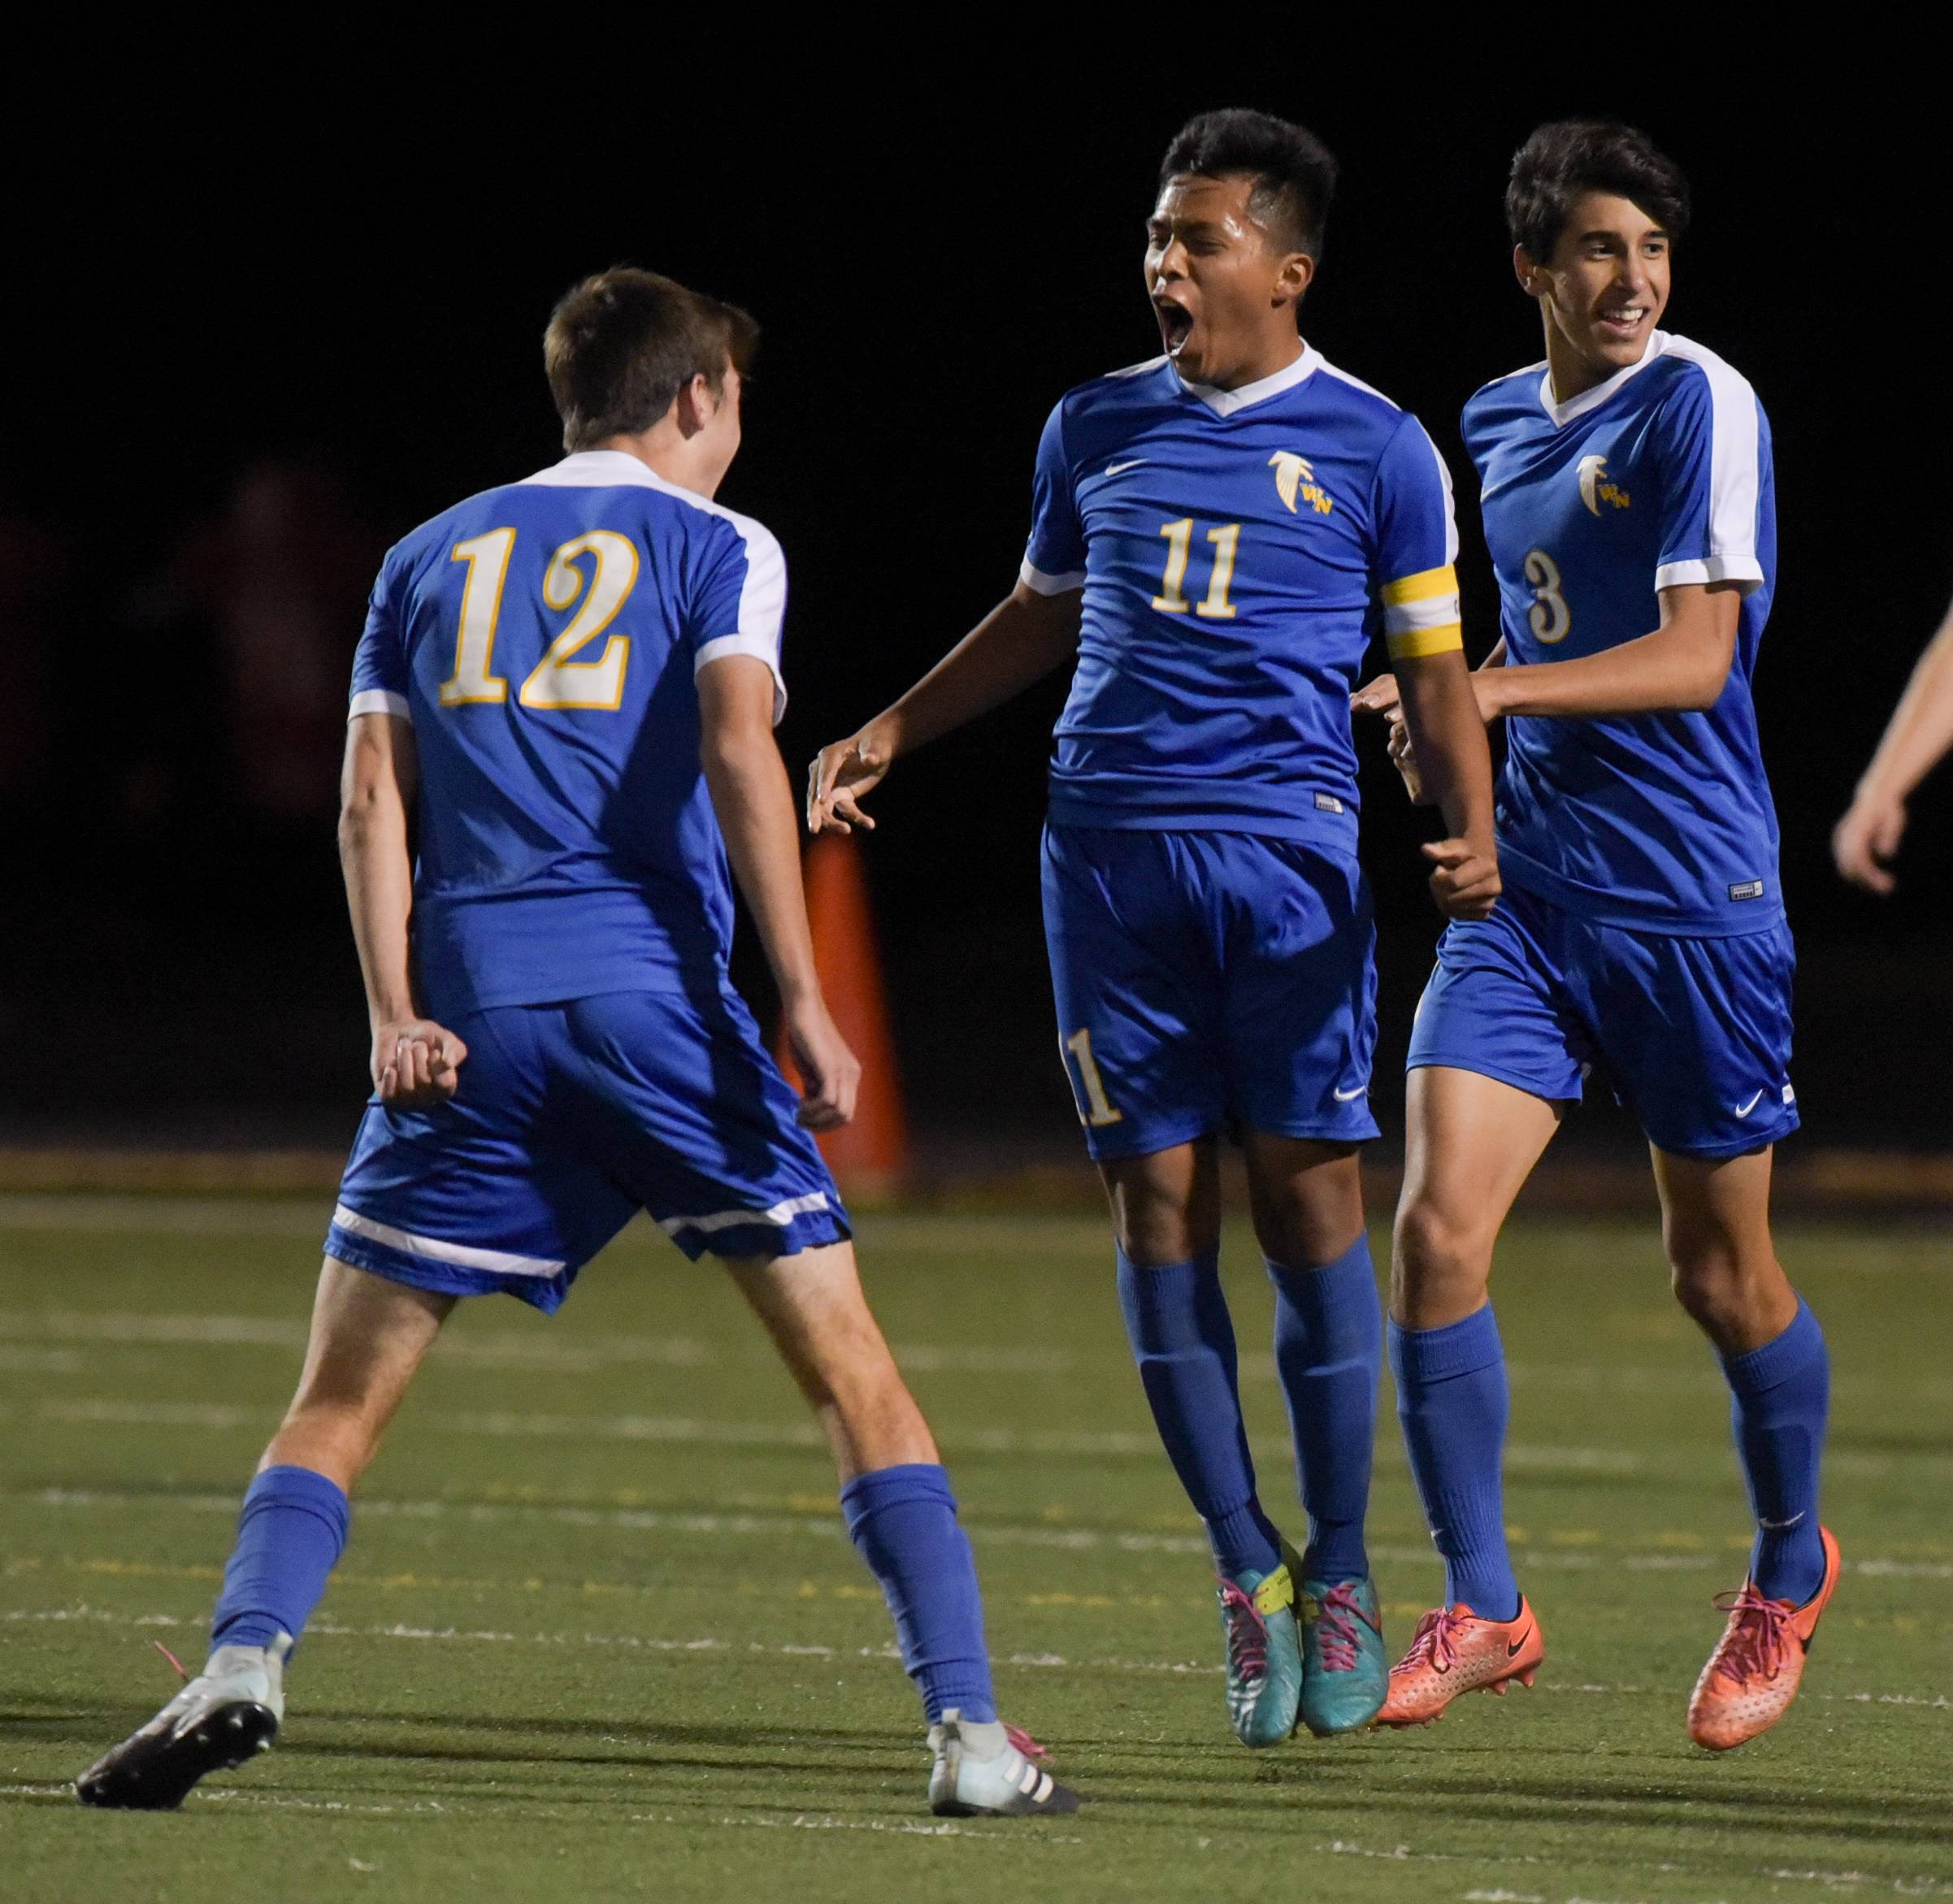 Wheaton North's Jorge Patino (11) is congratulated after his first-half goal against Conant during the Schaumburg Class 3A boys soccer regional semifinal play Wednesday.